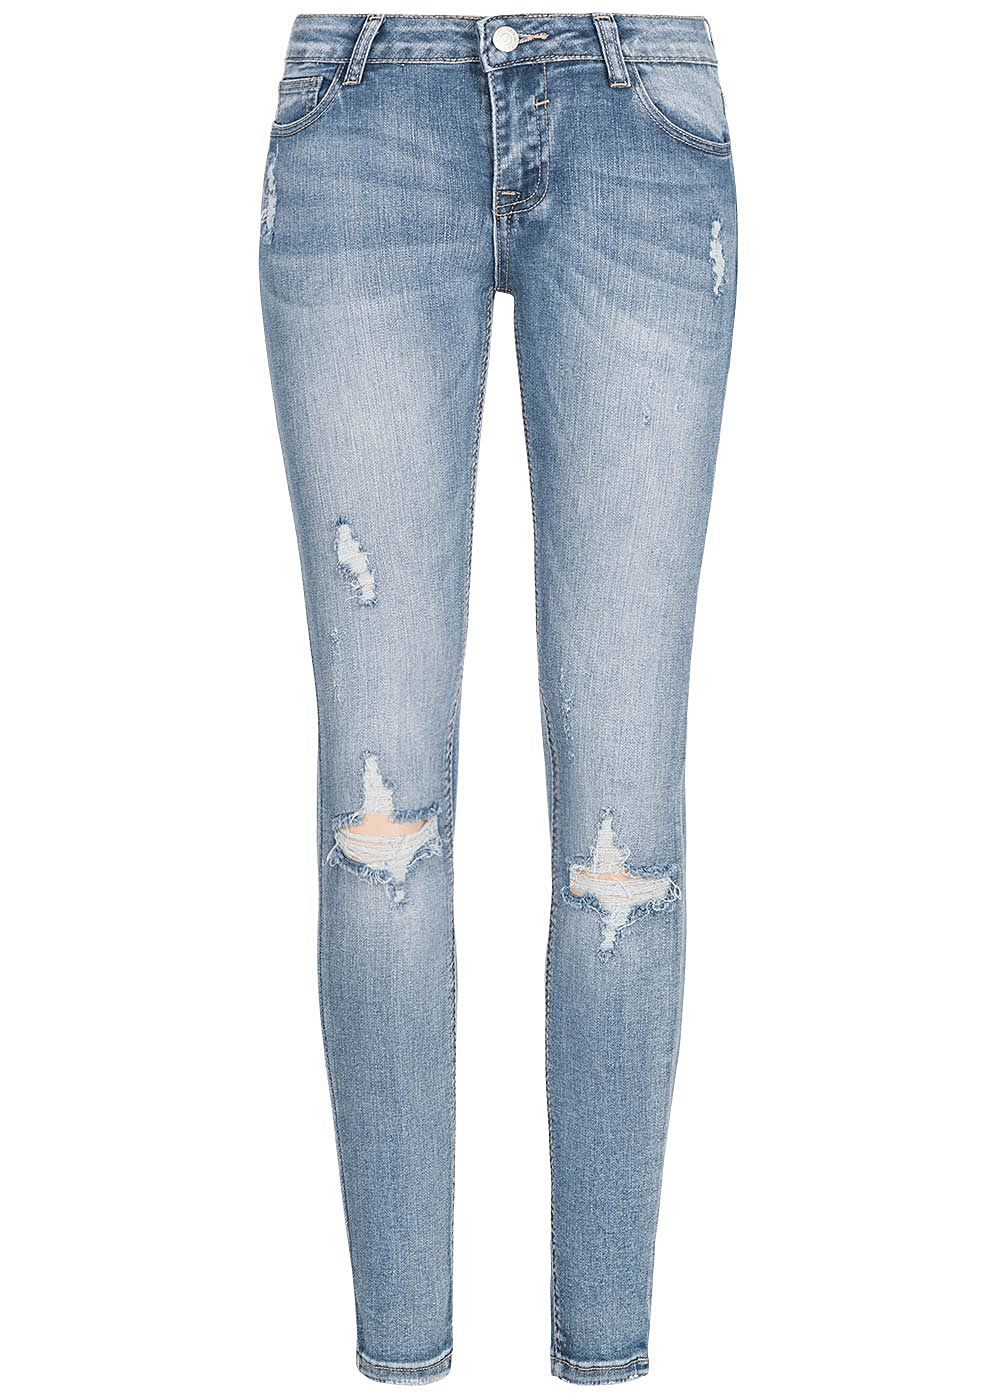 Seventyseven Lifestyle Damen Skinny Jeans Hose Destroy Look 5-Pockets medium blau denim - Art.-Nr.: 19039047-XS-DN